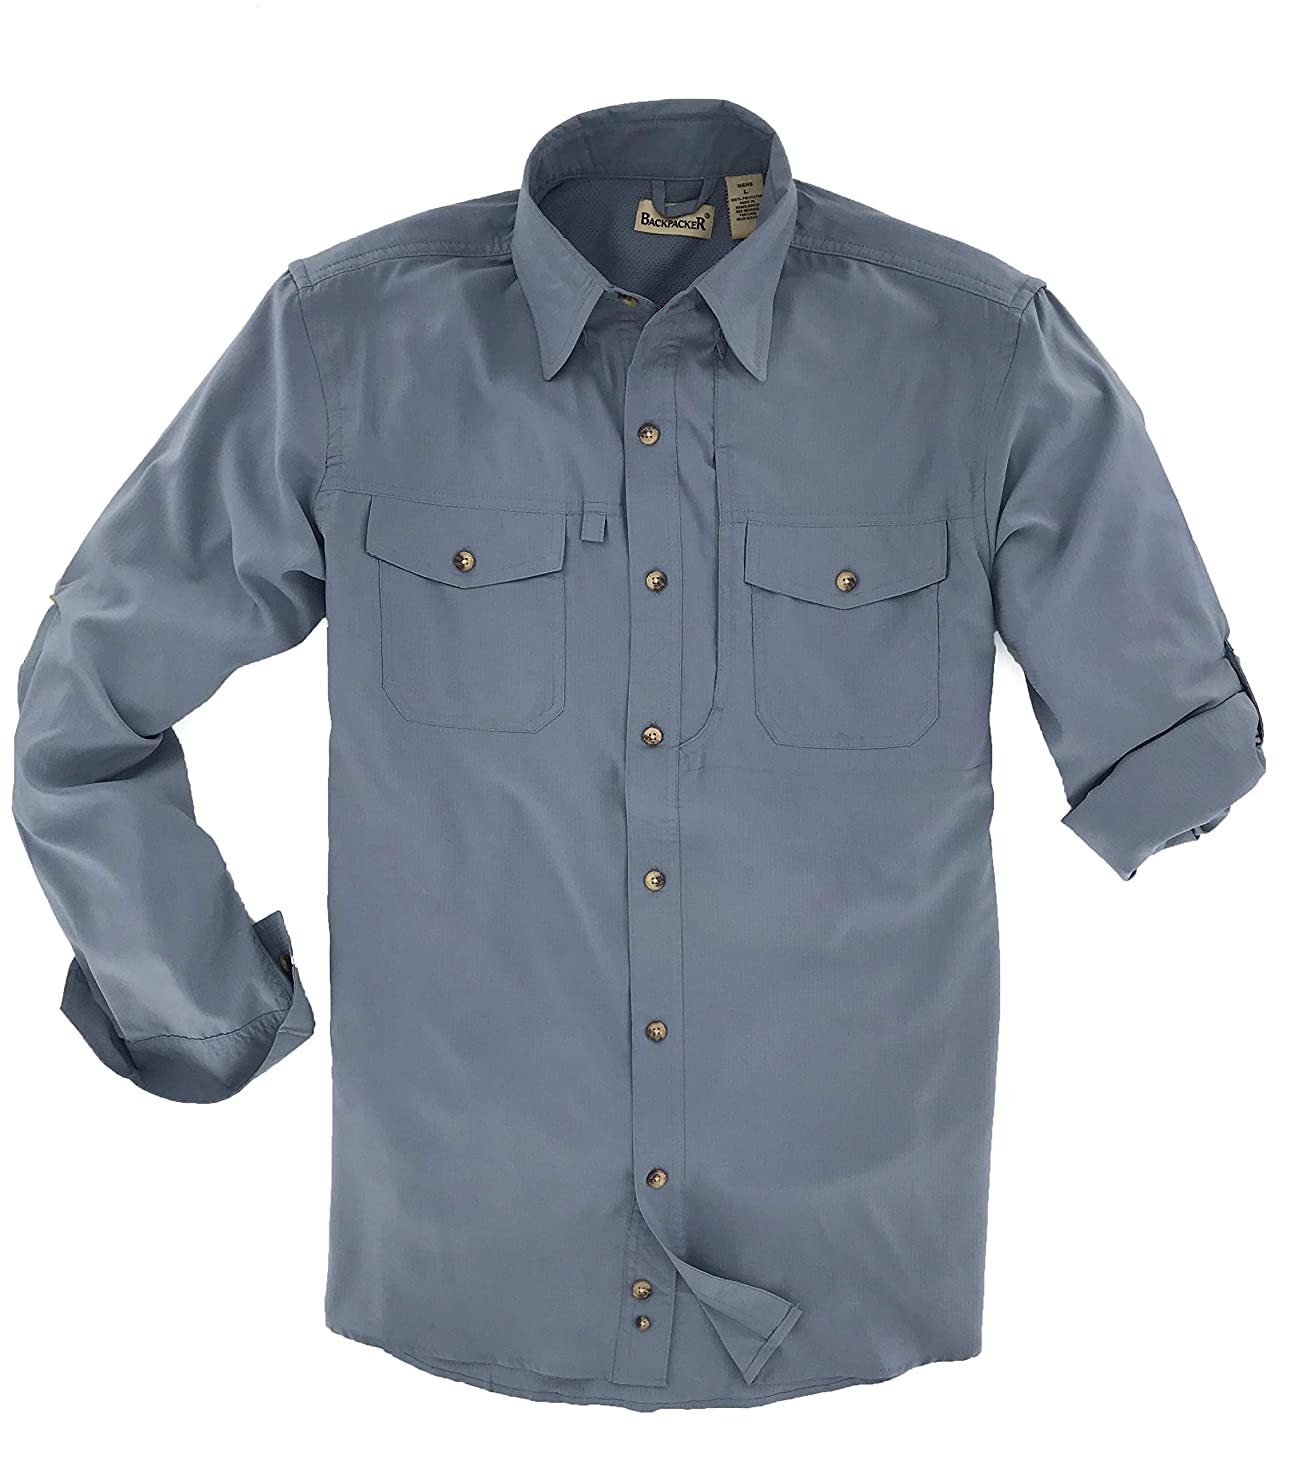 Backpacker Expedition Travel Shirt